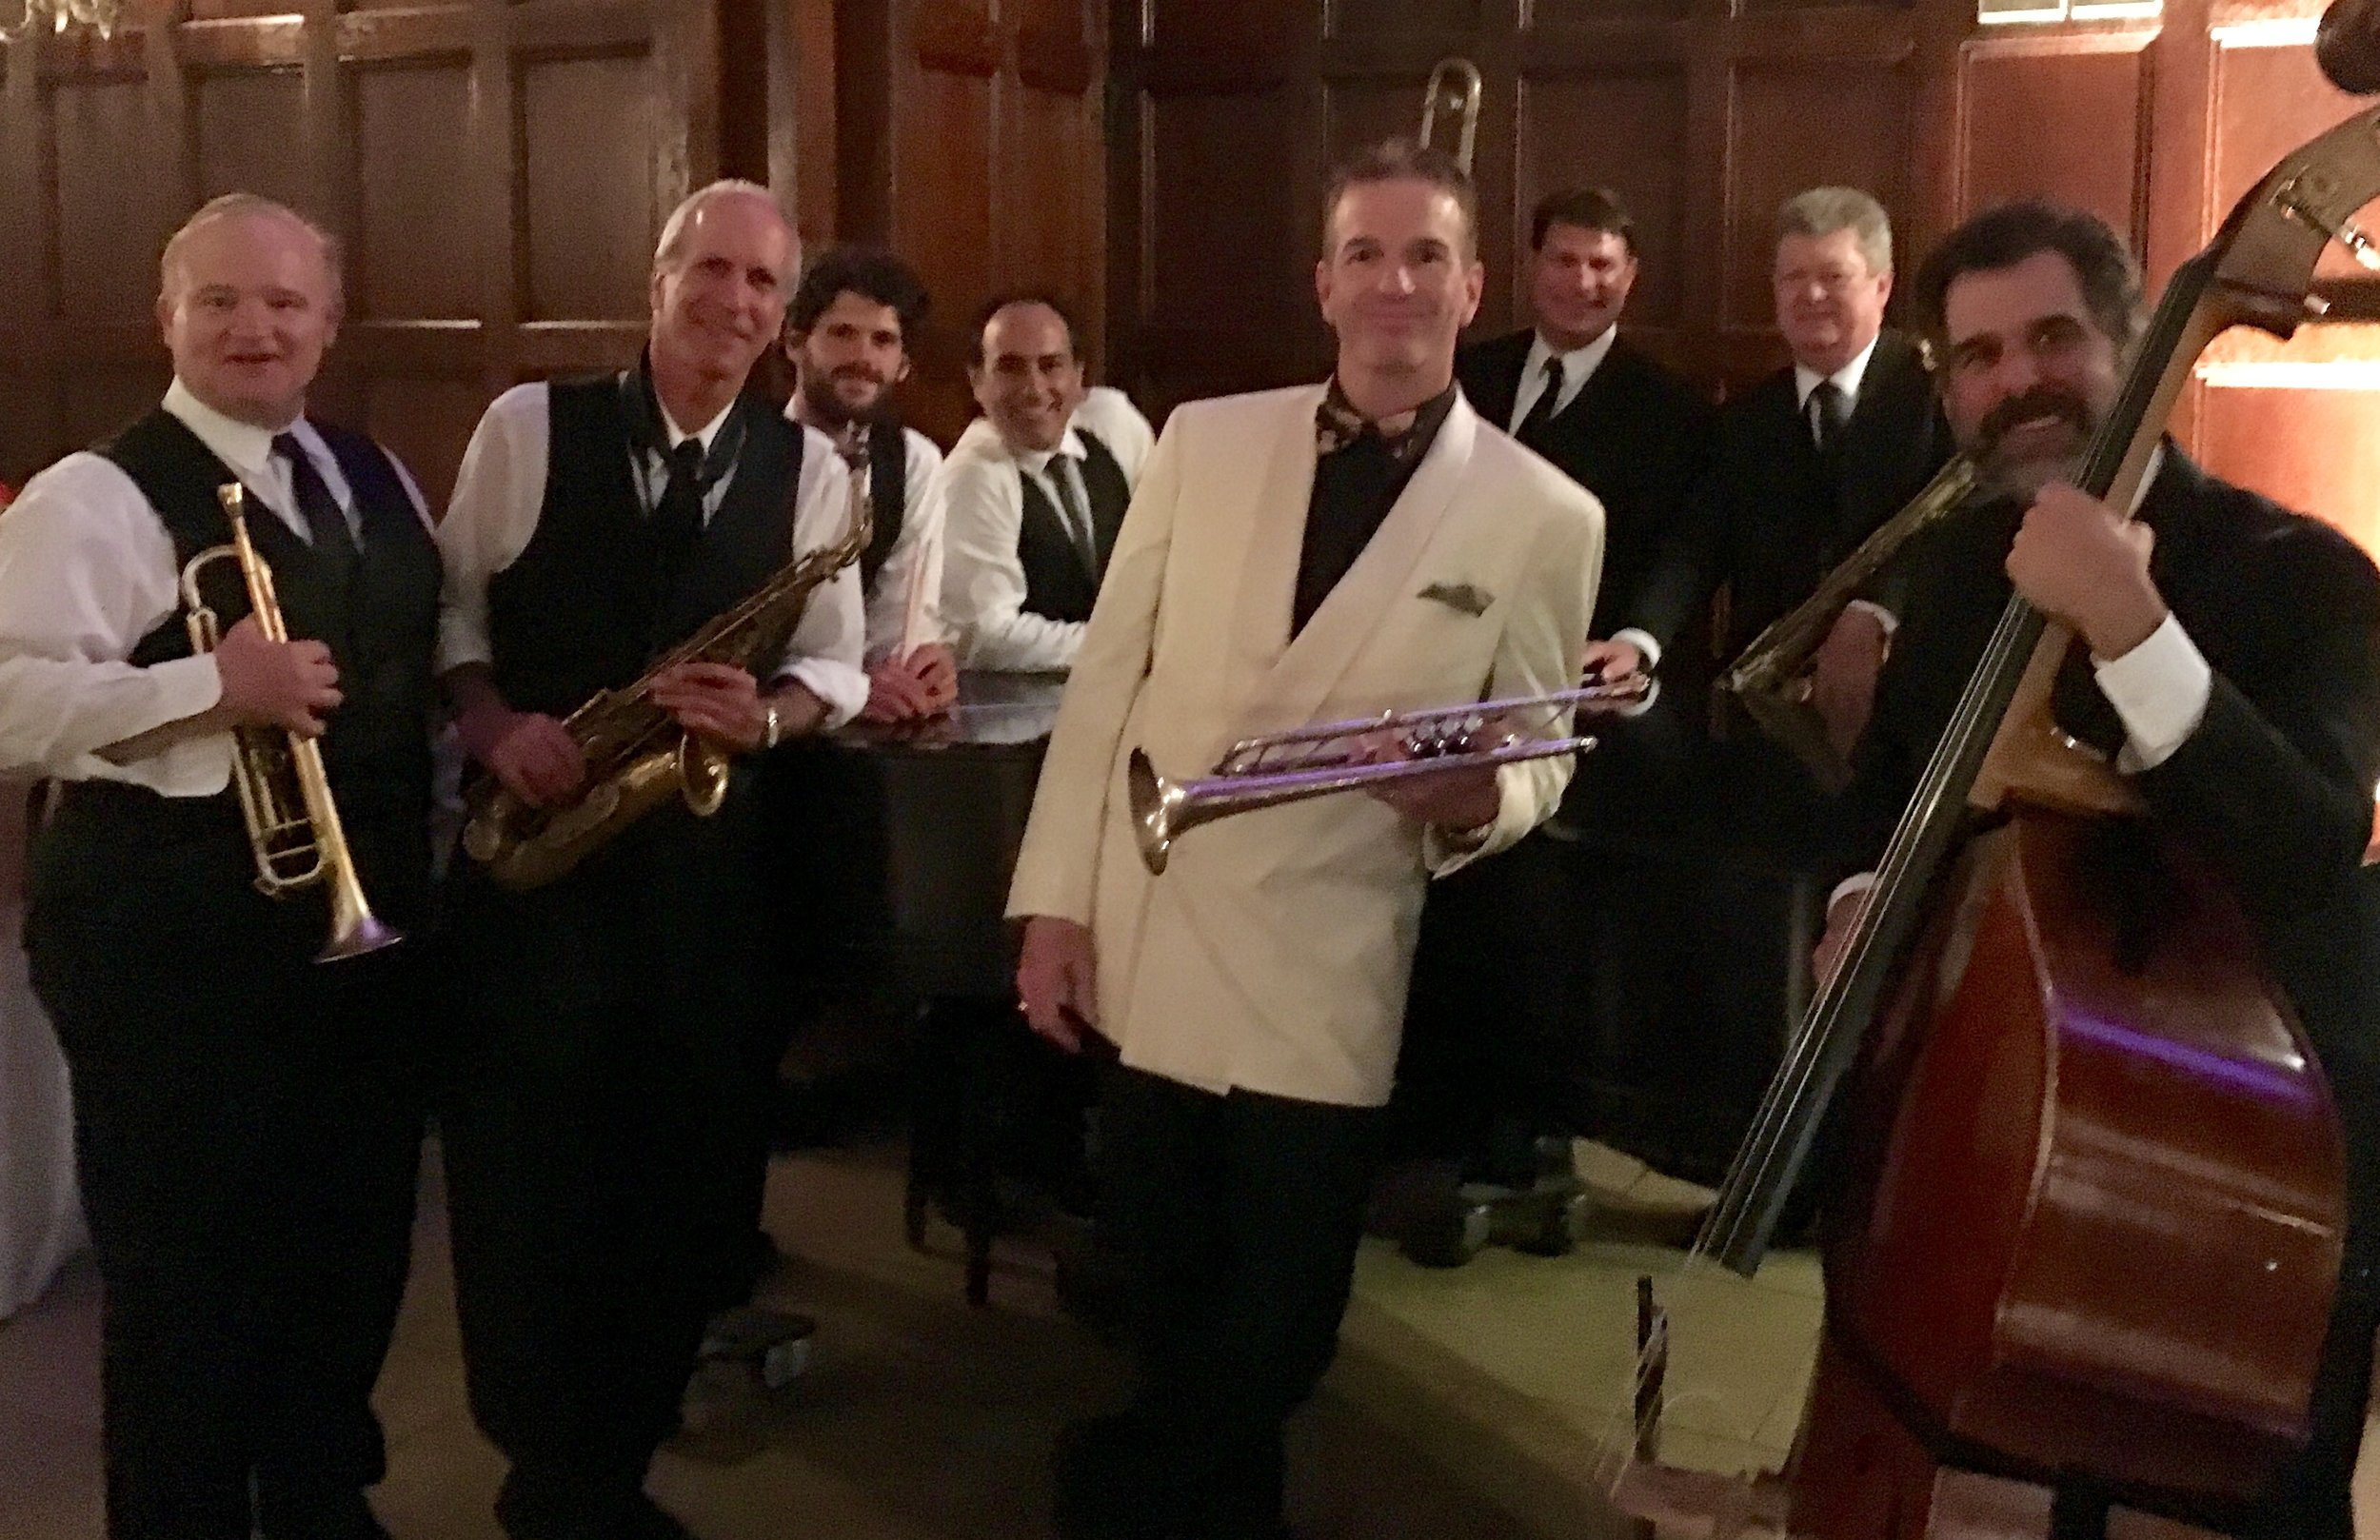 Mark Greel & Swing-Time performs music from Sinatra and the Rat Pack all over Boston